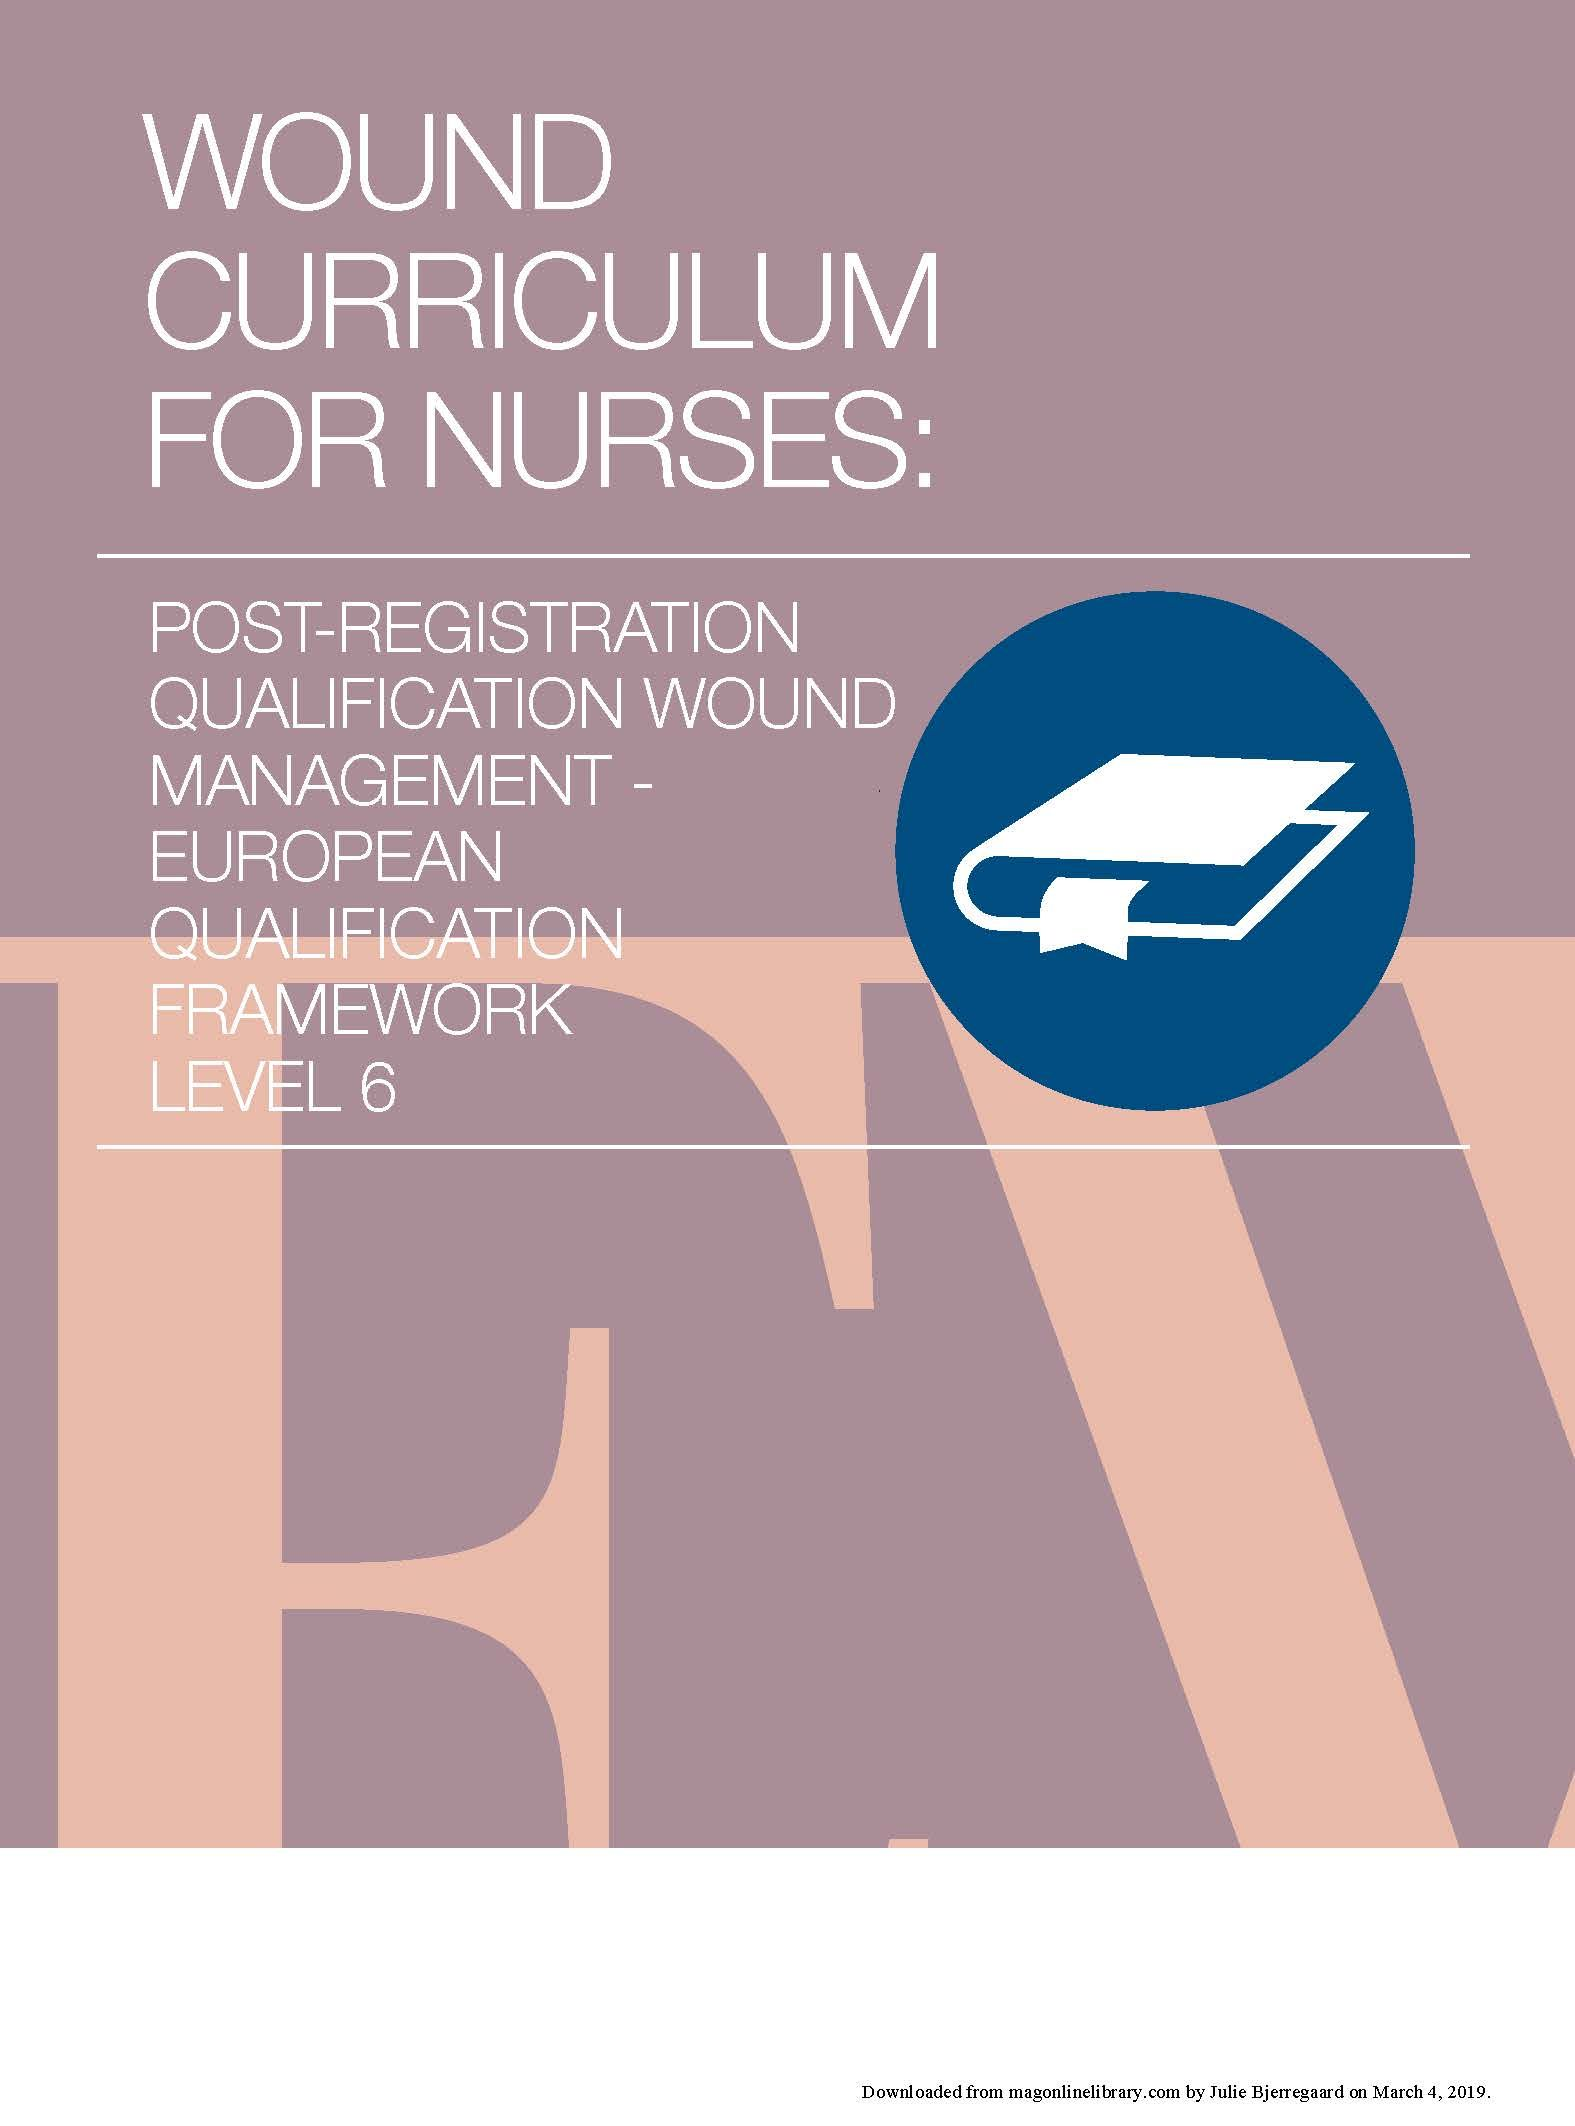 EWMA Curriculum for nurses EQF level 6